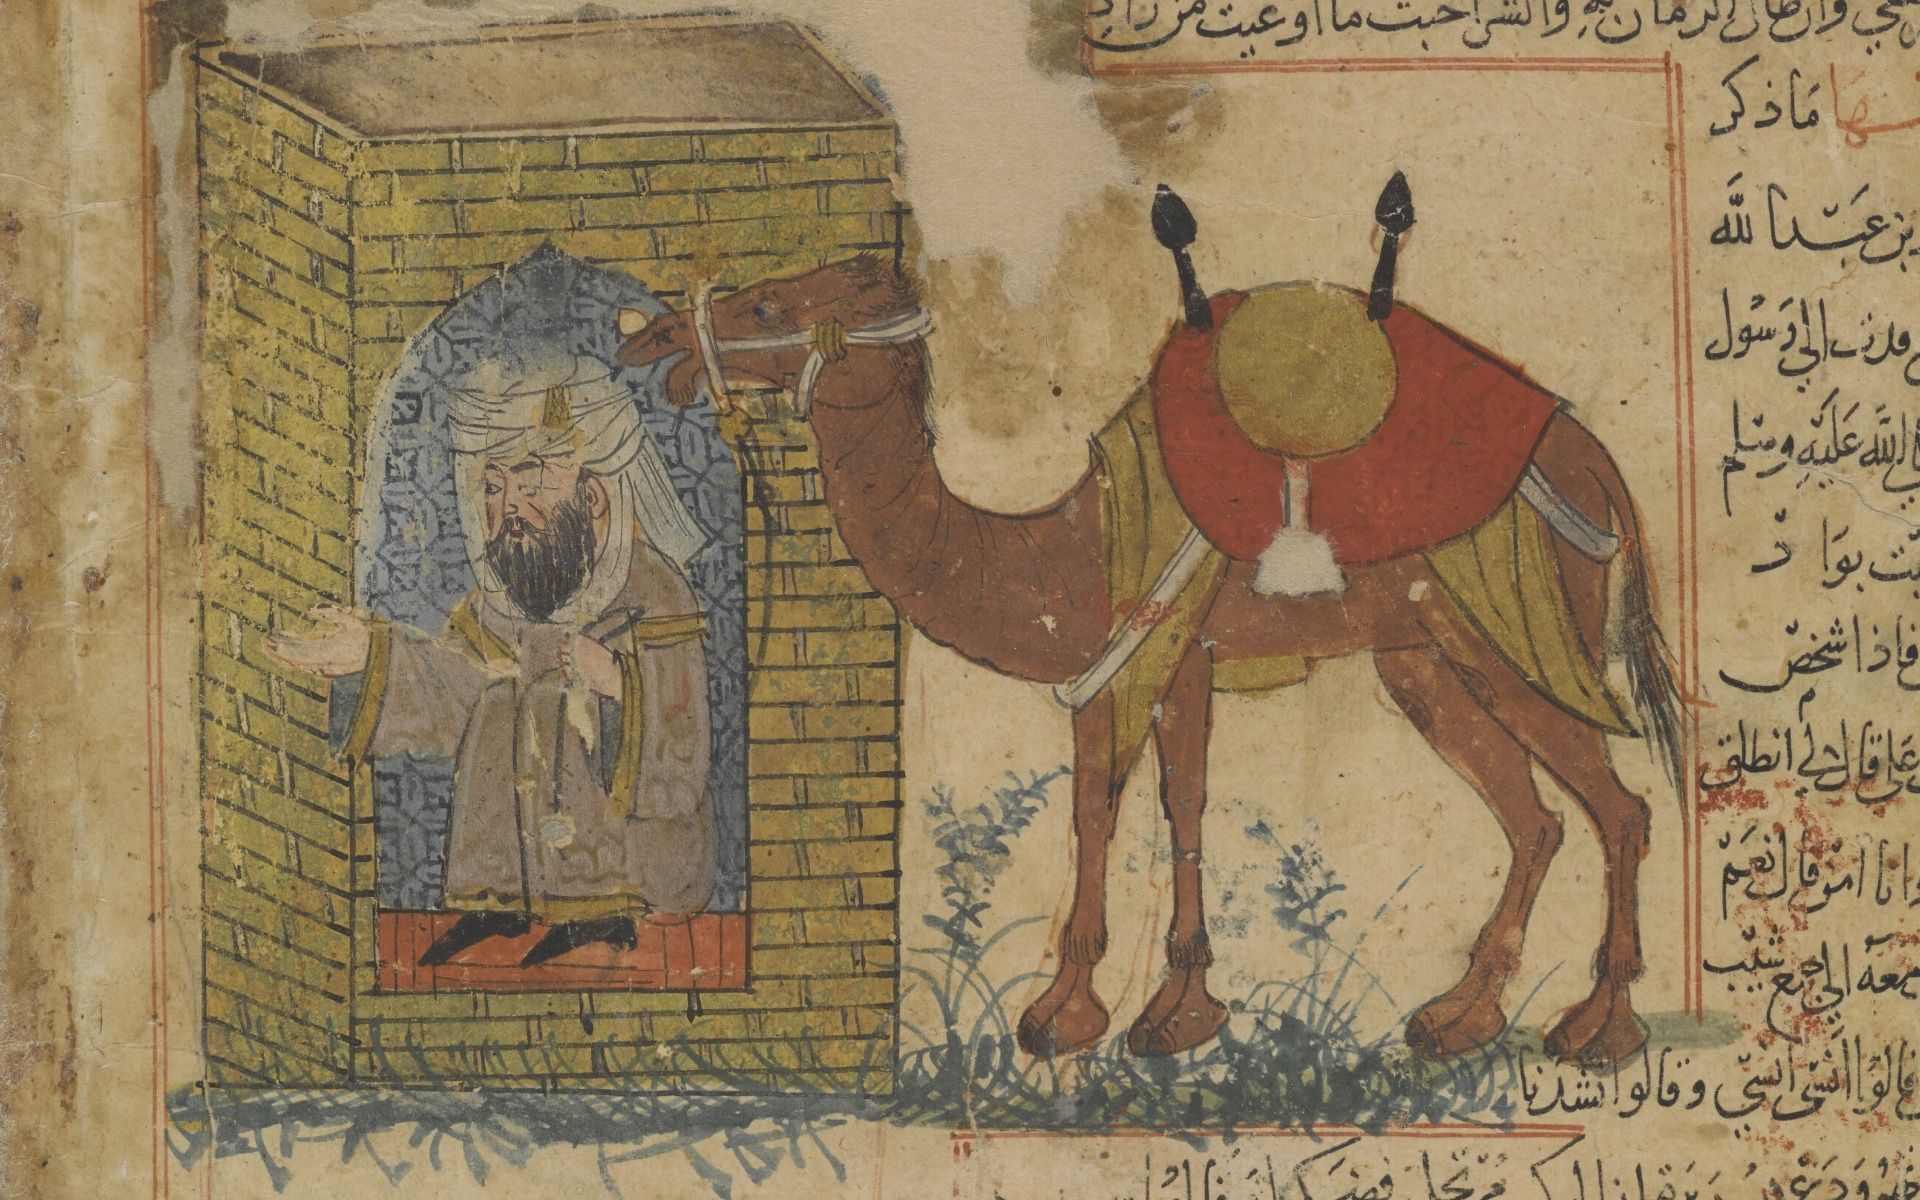 The traveller and the camel jinn from 'Ajā'ib al-makhlūqāt